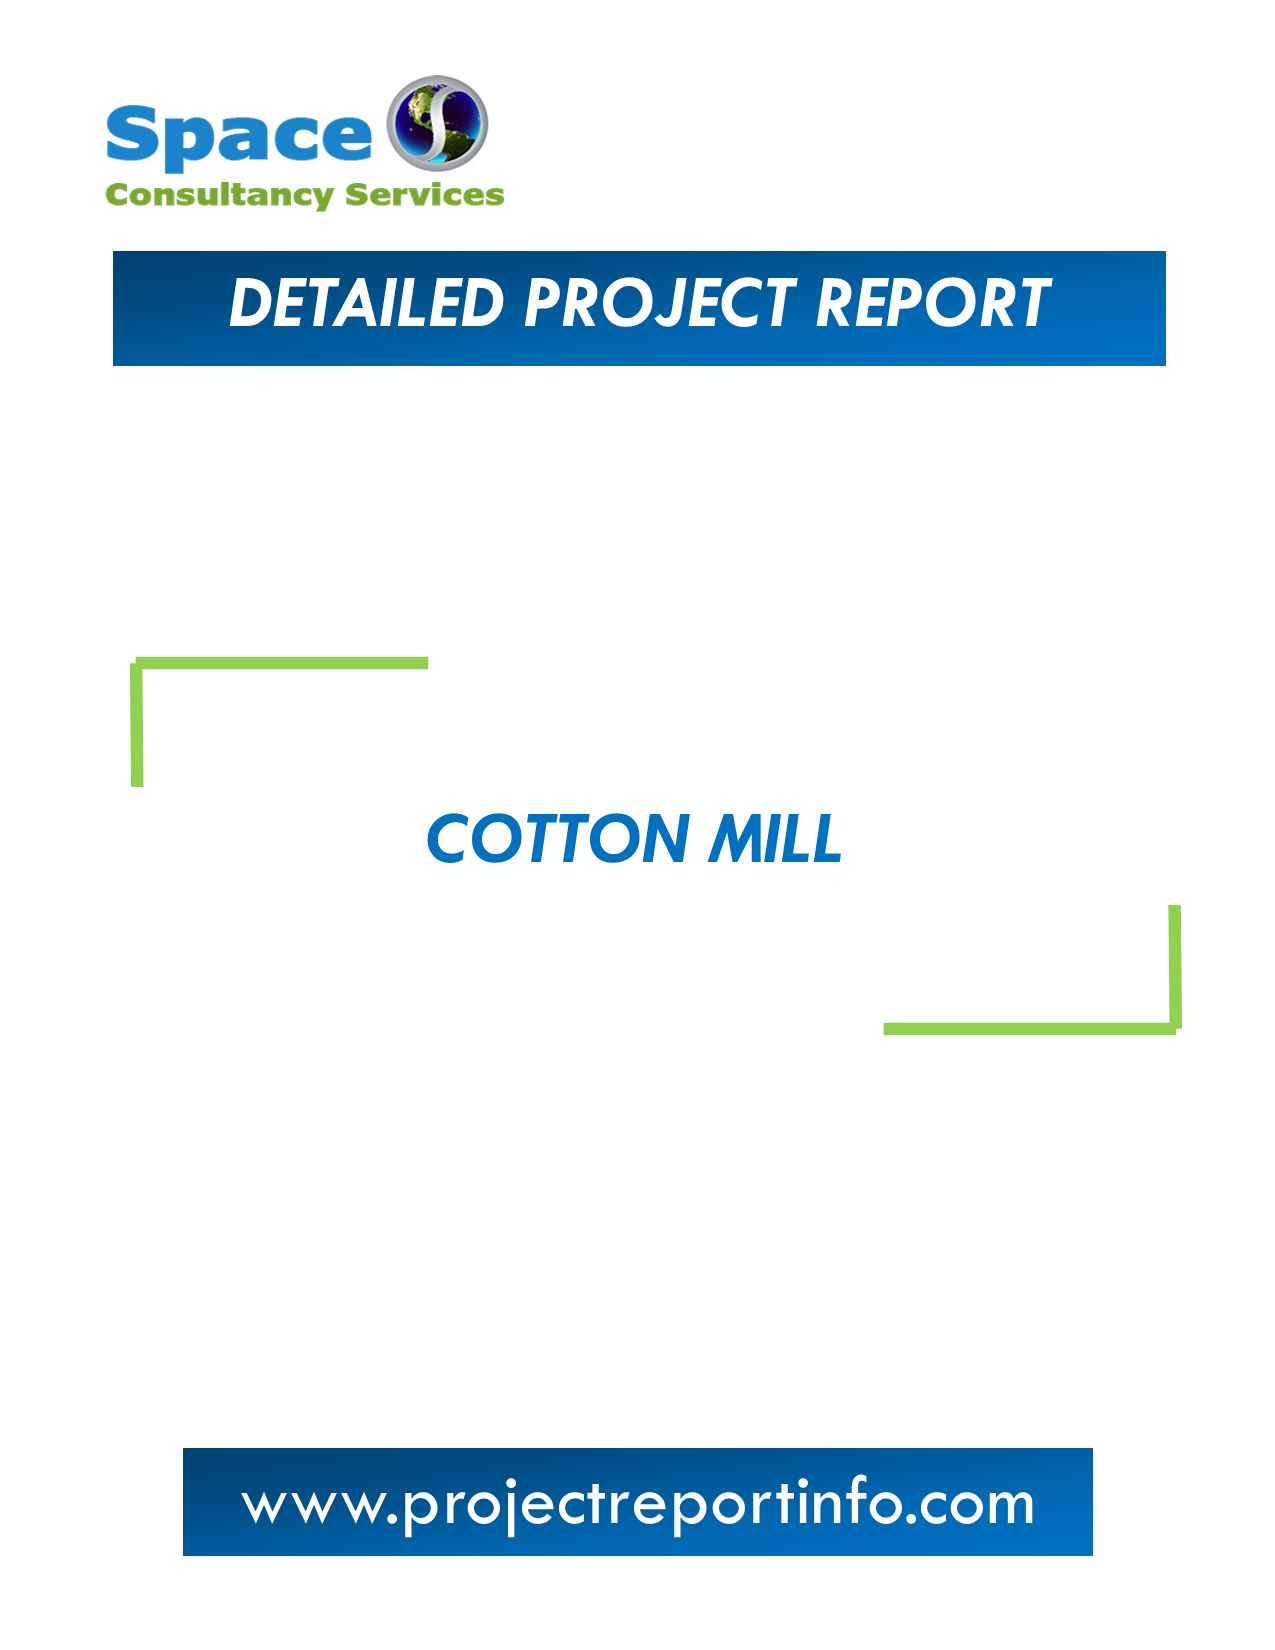 Project Report on Cotton Mill